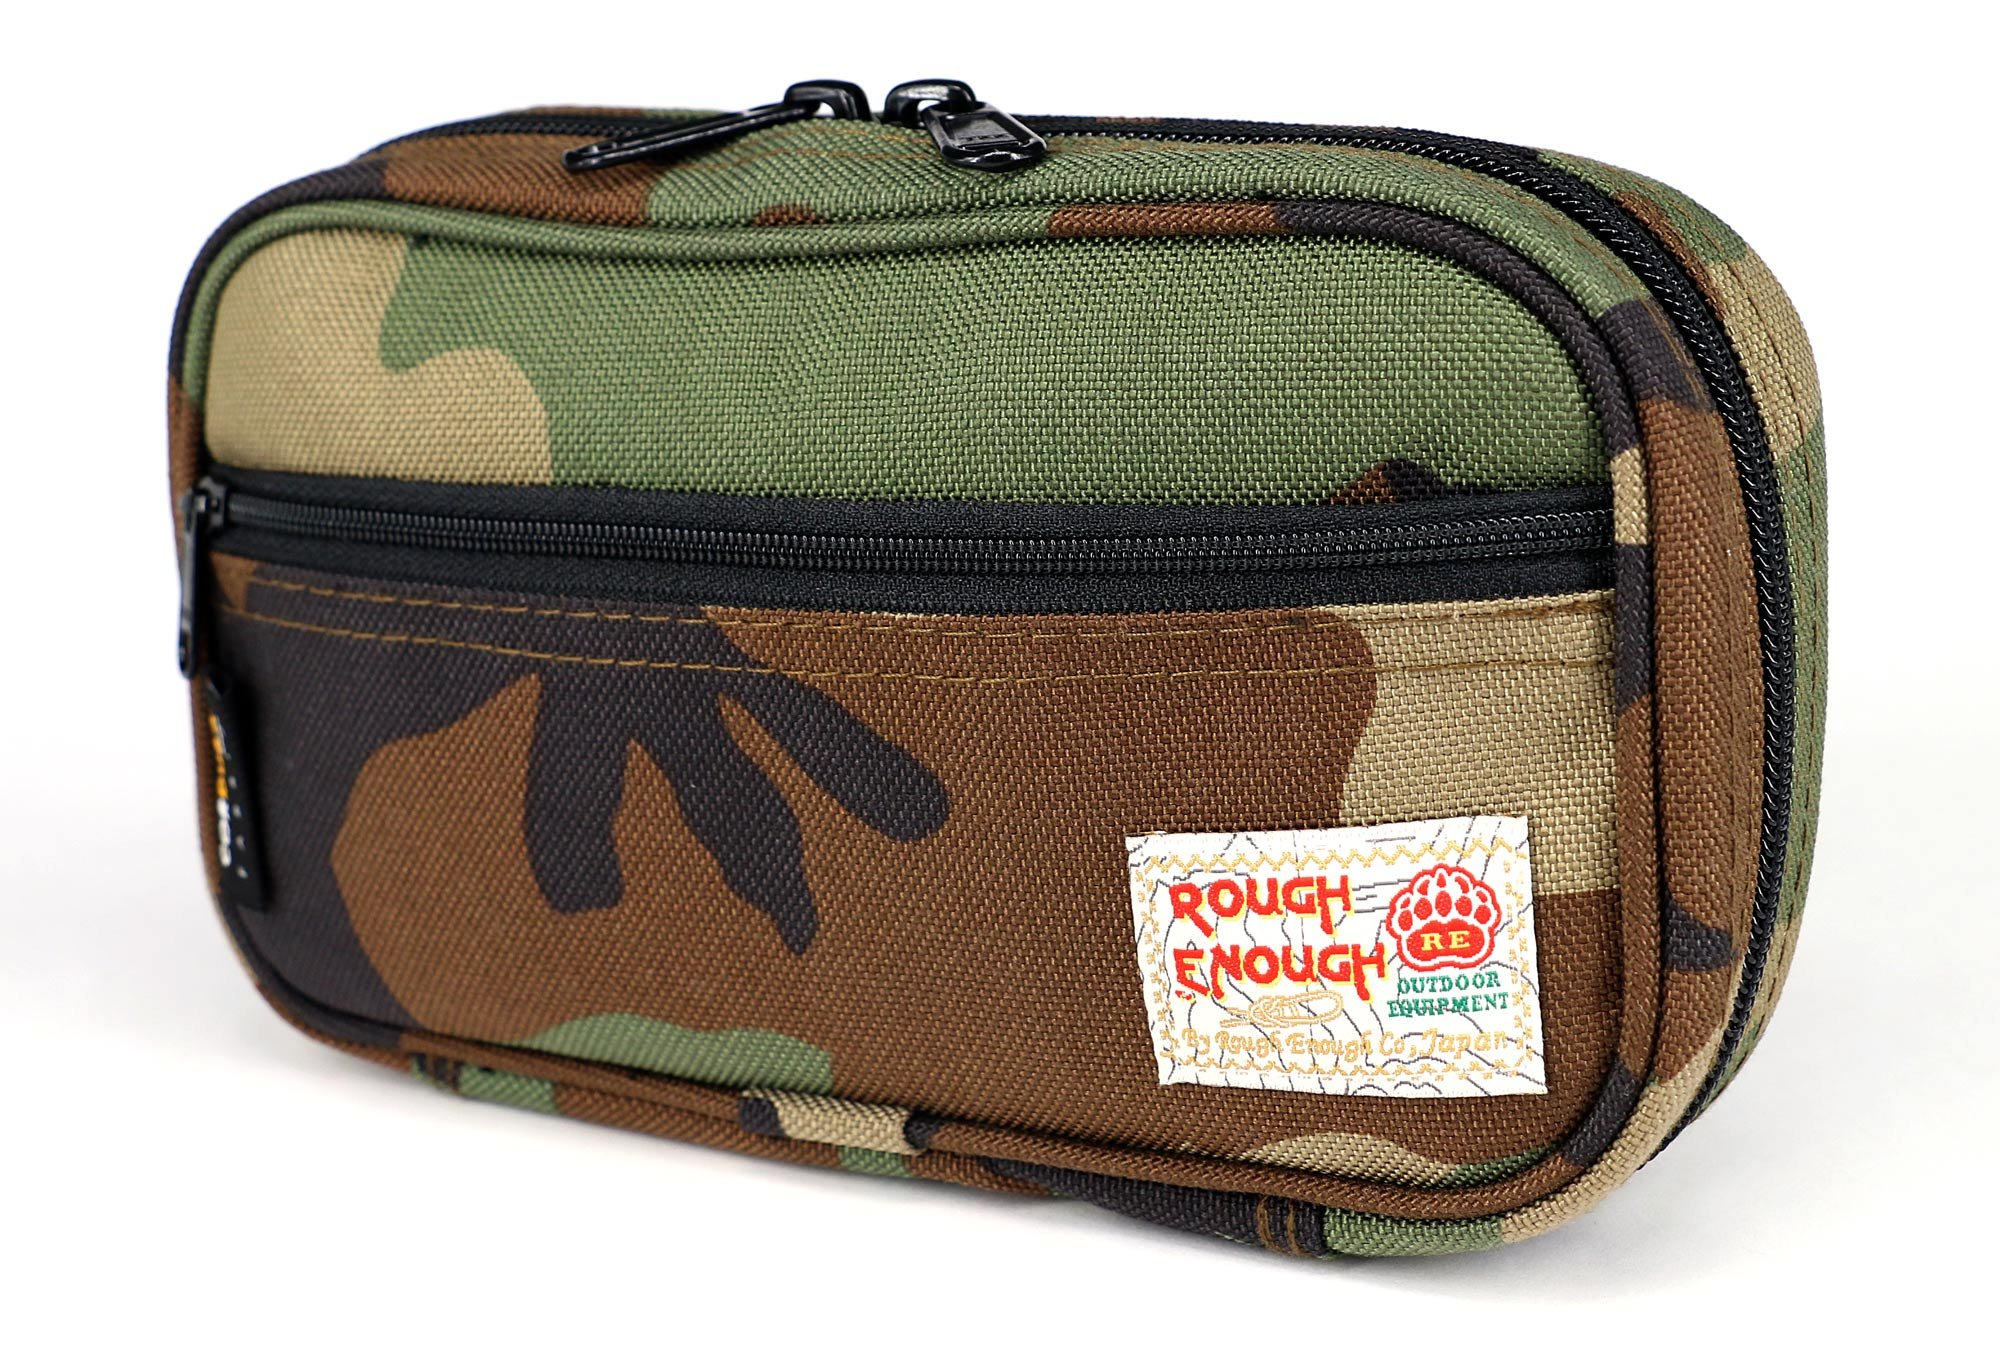 Rough Enough CORDURA Multi Functional Large Capacity Portable Tools Pouch Holder Travel Bag Cosmetic Organizer Storage Pencil Case for School Stationary Art Supplies Kids Men Women Outdoor